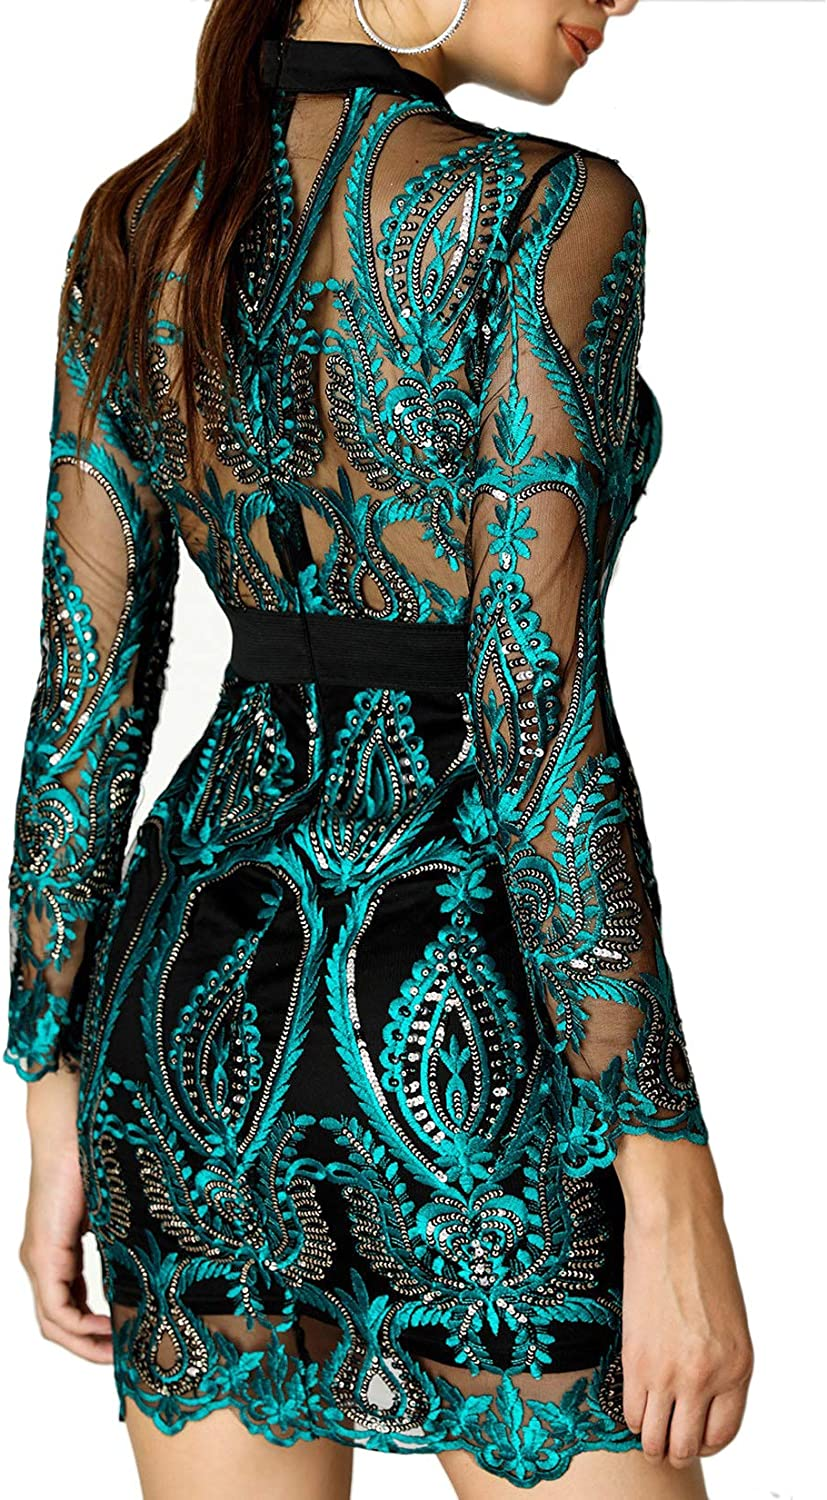 VENSHEMET Women Sexy Sequin Bodycon Mesh Long Sleeves Hollow Out Prom Cocktail Party Dress Outfit